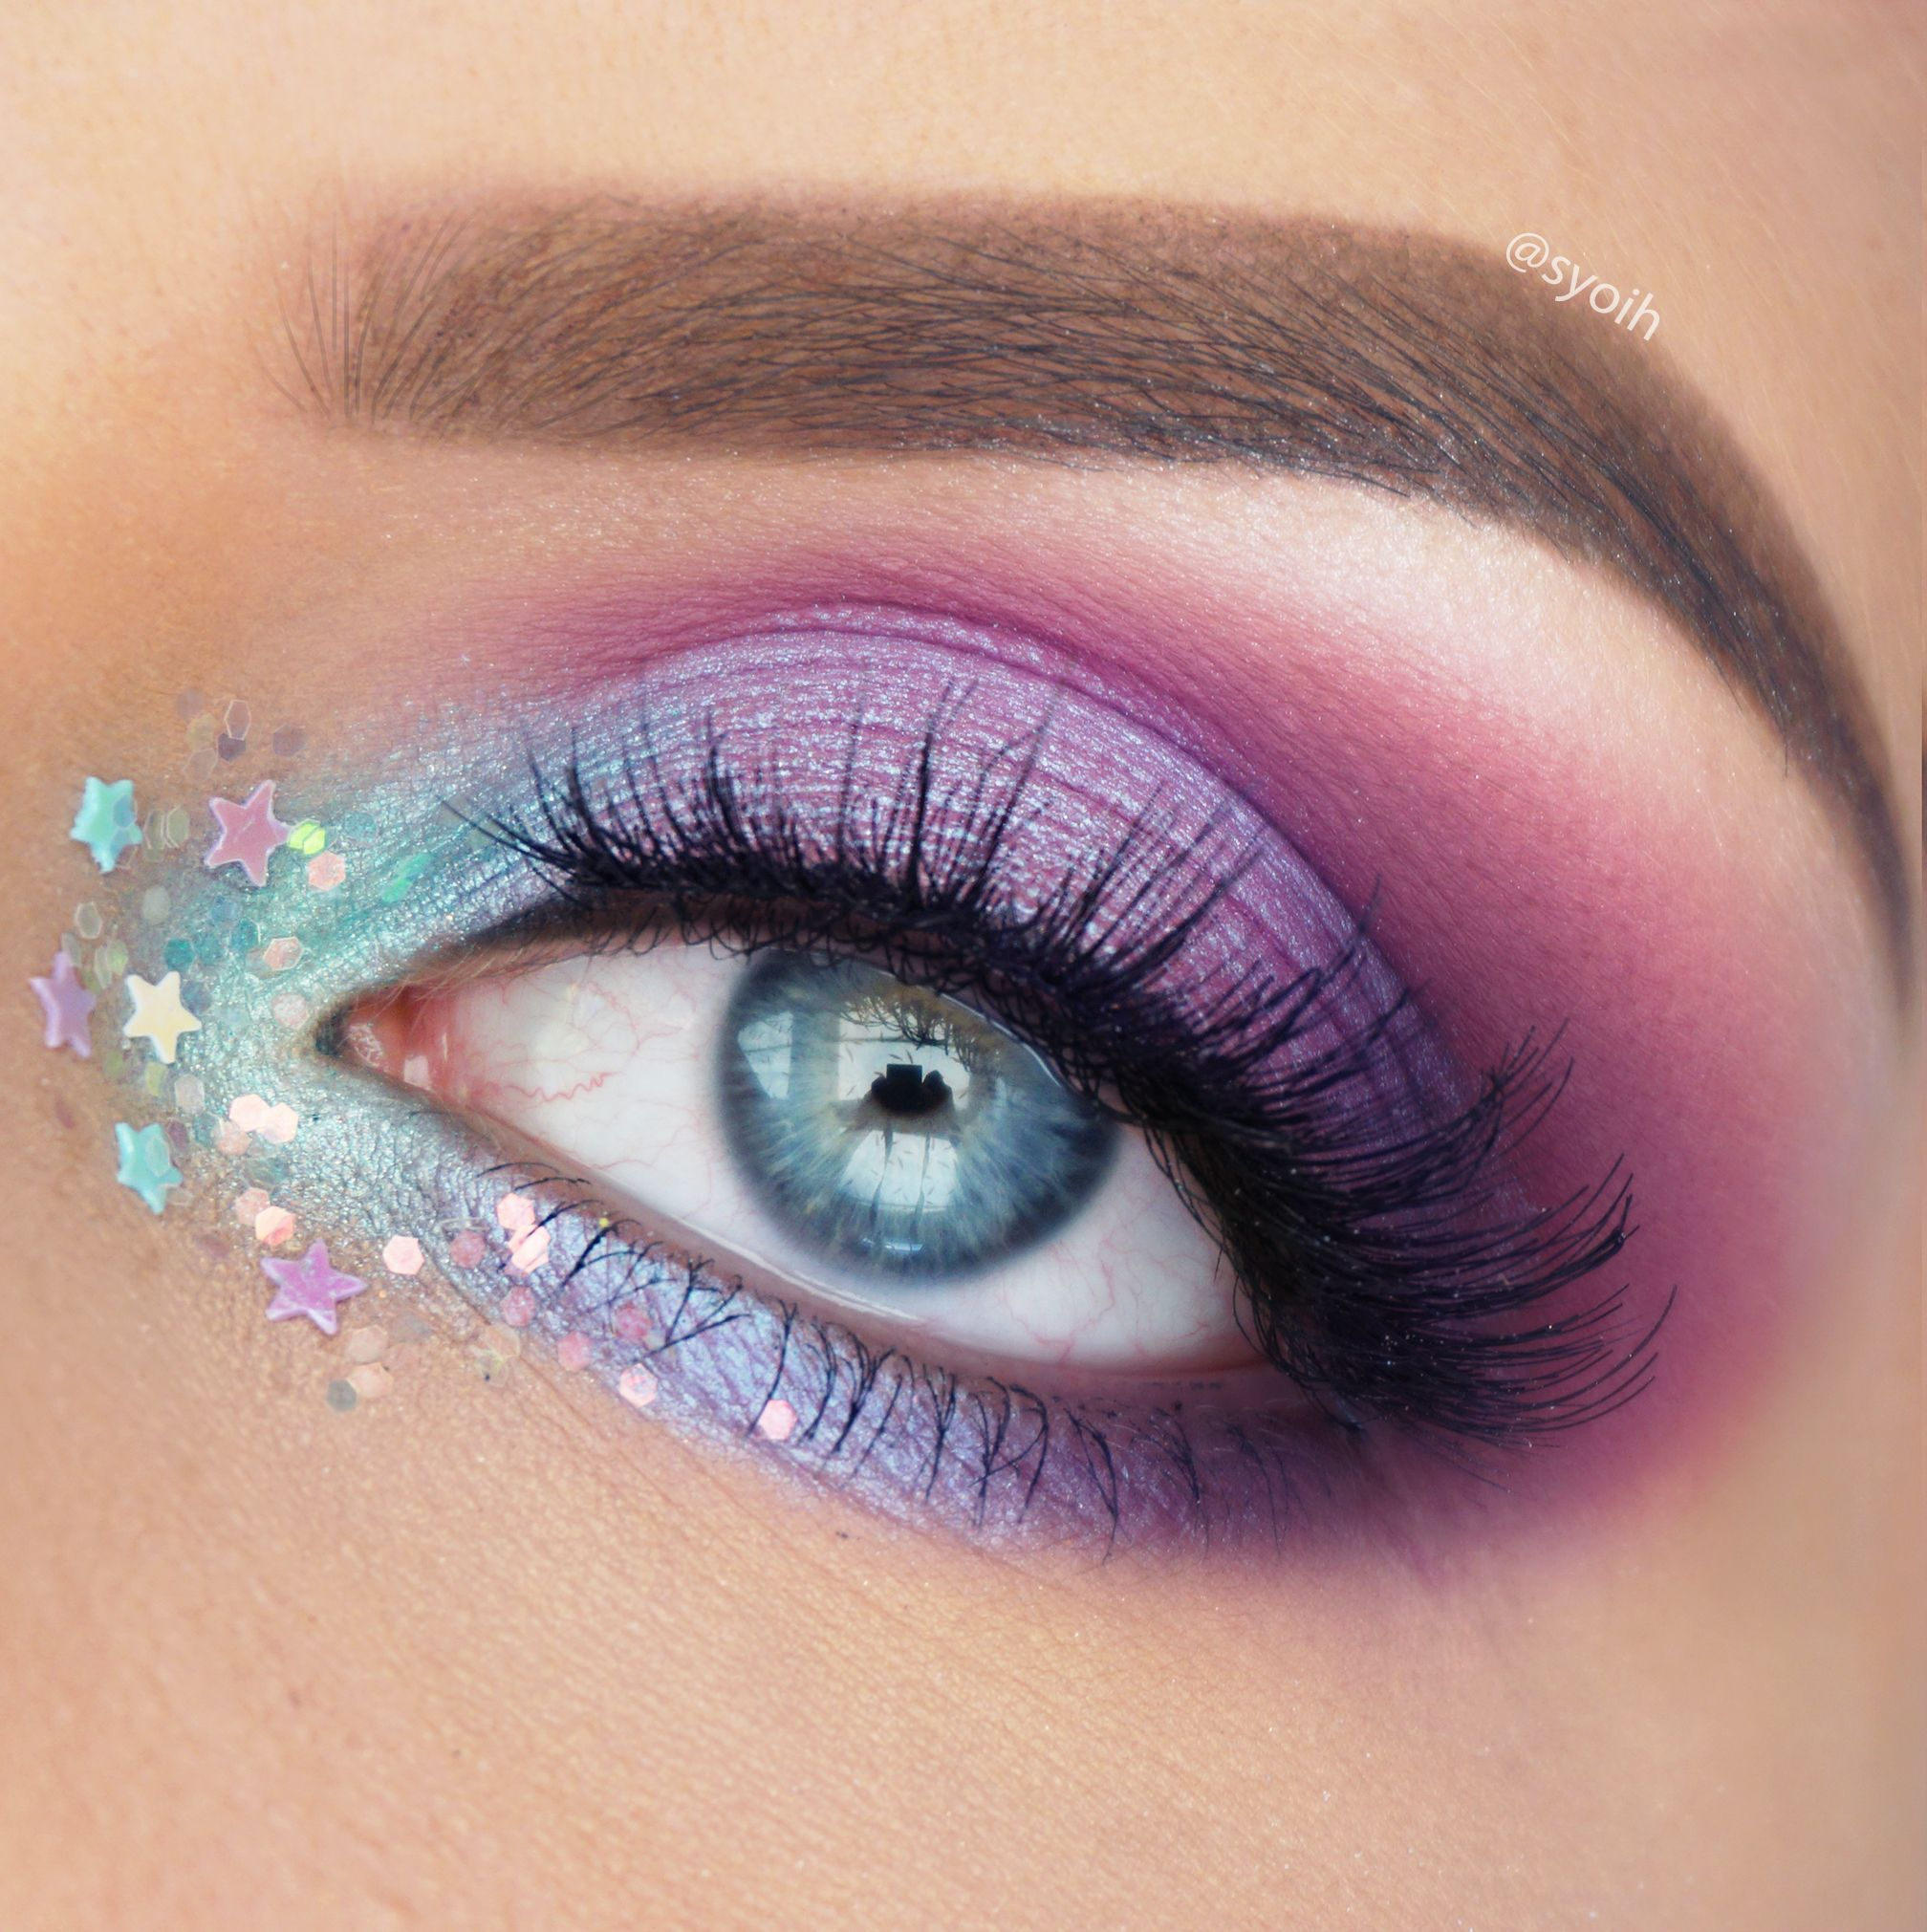 Pastel Fun Makeup Tutorial Make Up Looks Pinterest Eyeshadows, Carnival and Create